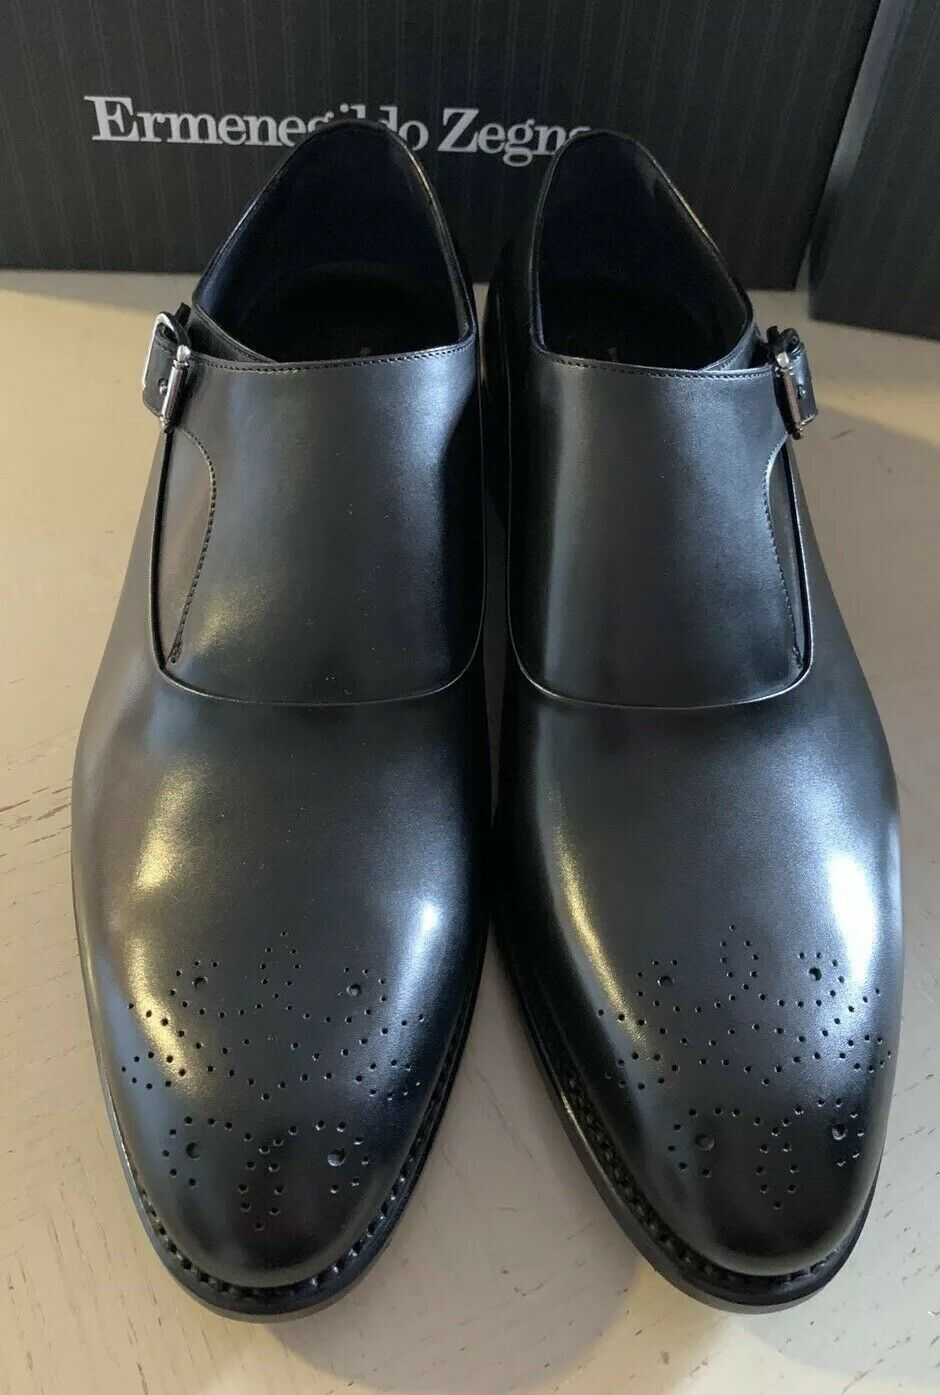 New $1350 Ermenegildo Zegna Couture Monk Brogues Leather Shoes Black 10 US Italy